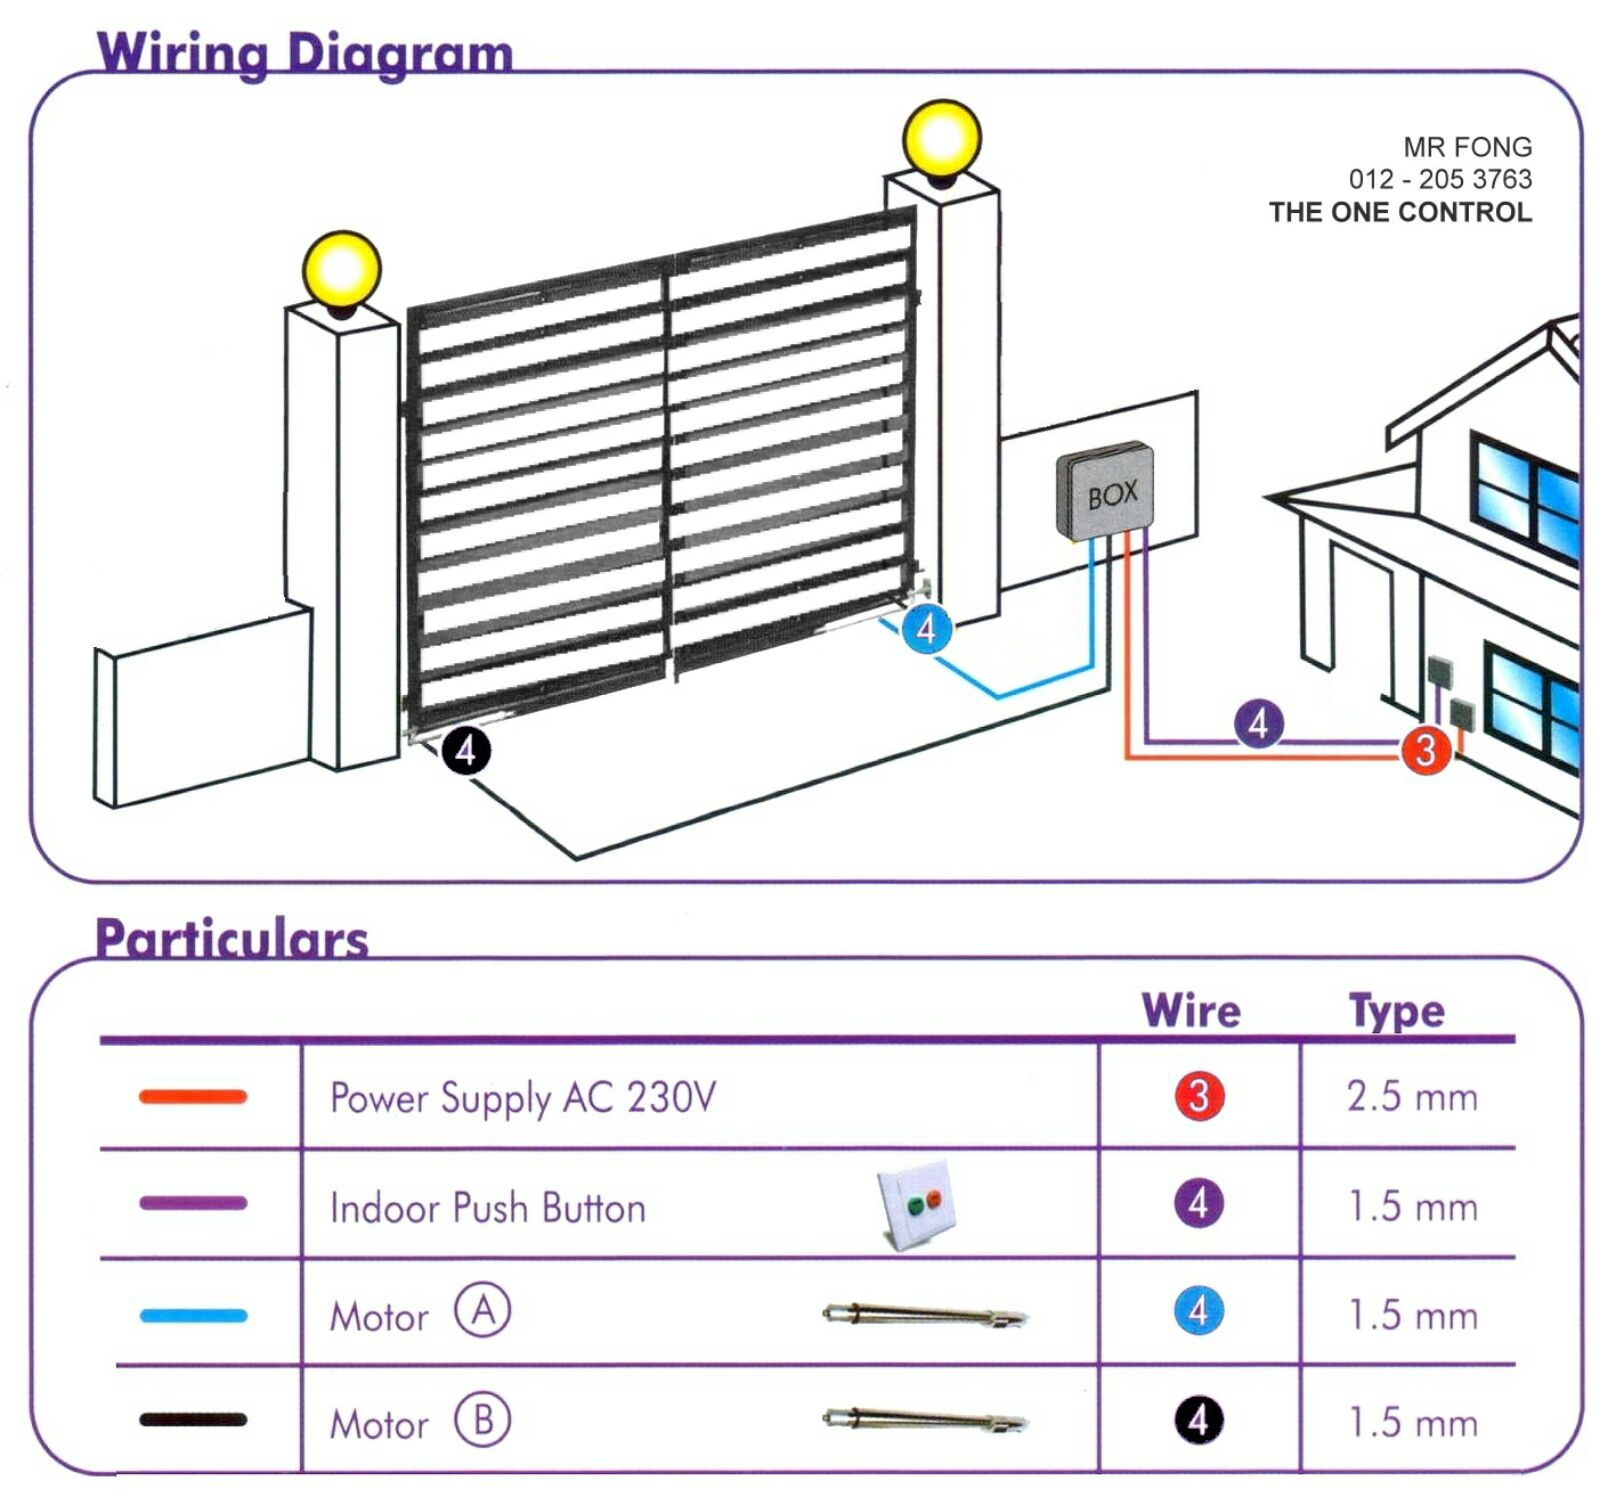 wiring diagram energy autogate auto gate system selangor malaysia kuala lumpur kl subang puchong supplier supply supplies installation the one  [ 1000 x 931 Pixel ]